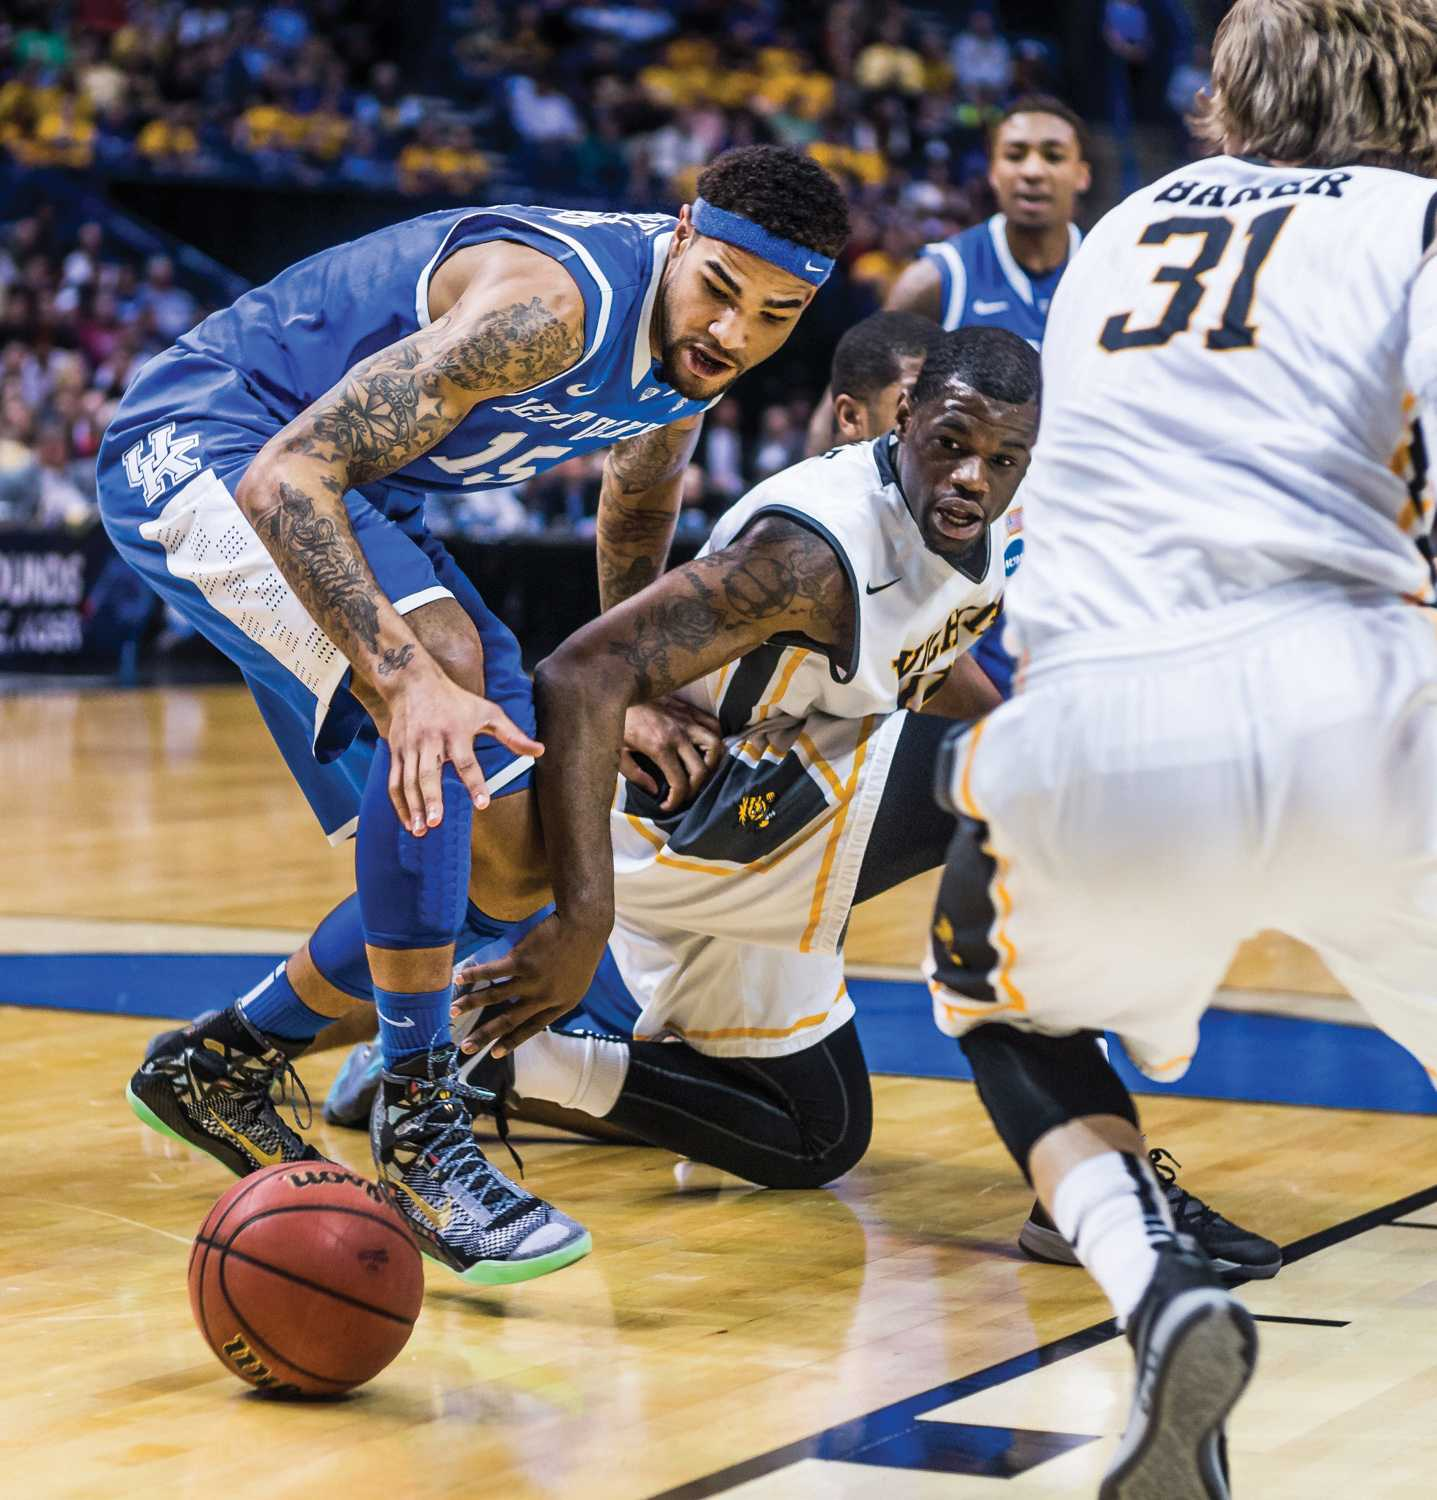 Senior Chadrack Lufile goes after the loose ball during the Wichita State vs Kentucky game Sunday evening inside the Scottrade Center Arena in St. Louis for the Round of 32 of the NCAA Tournament. The Shockers failed to beat the Wildcats and lost 78-76.